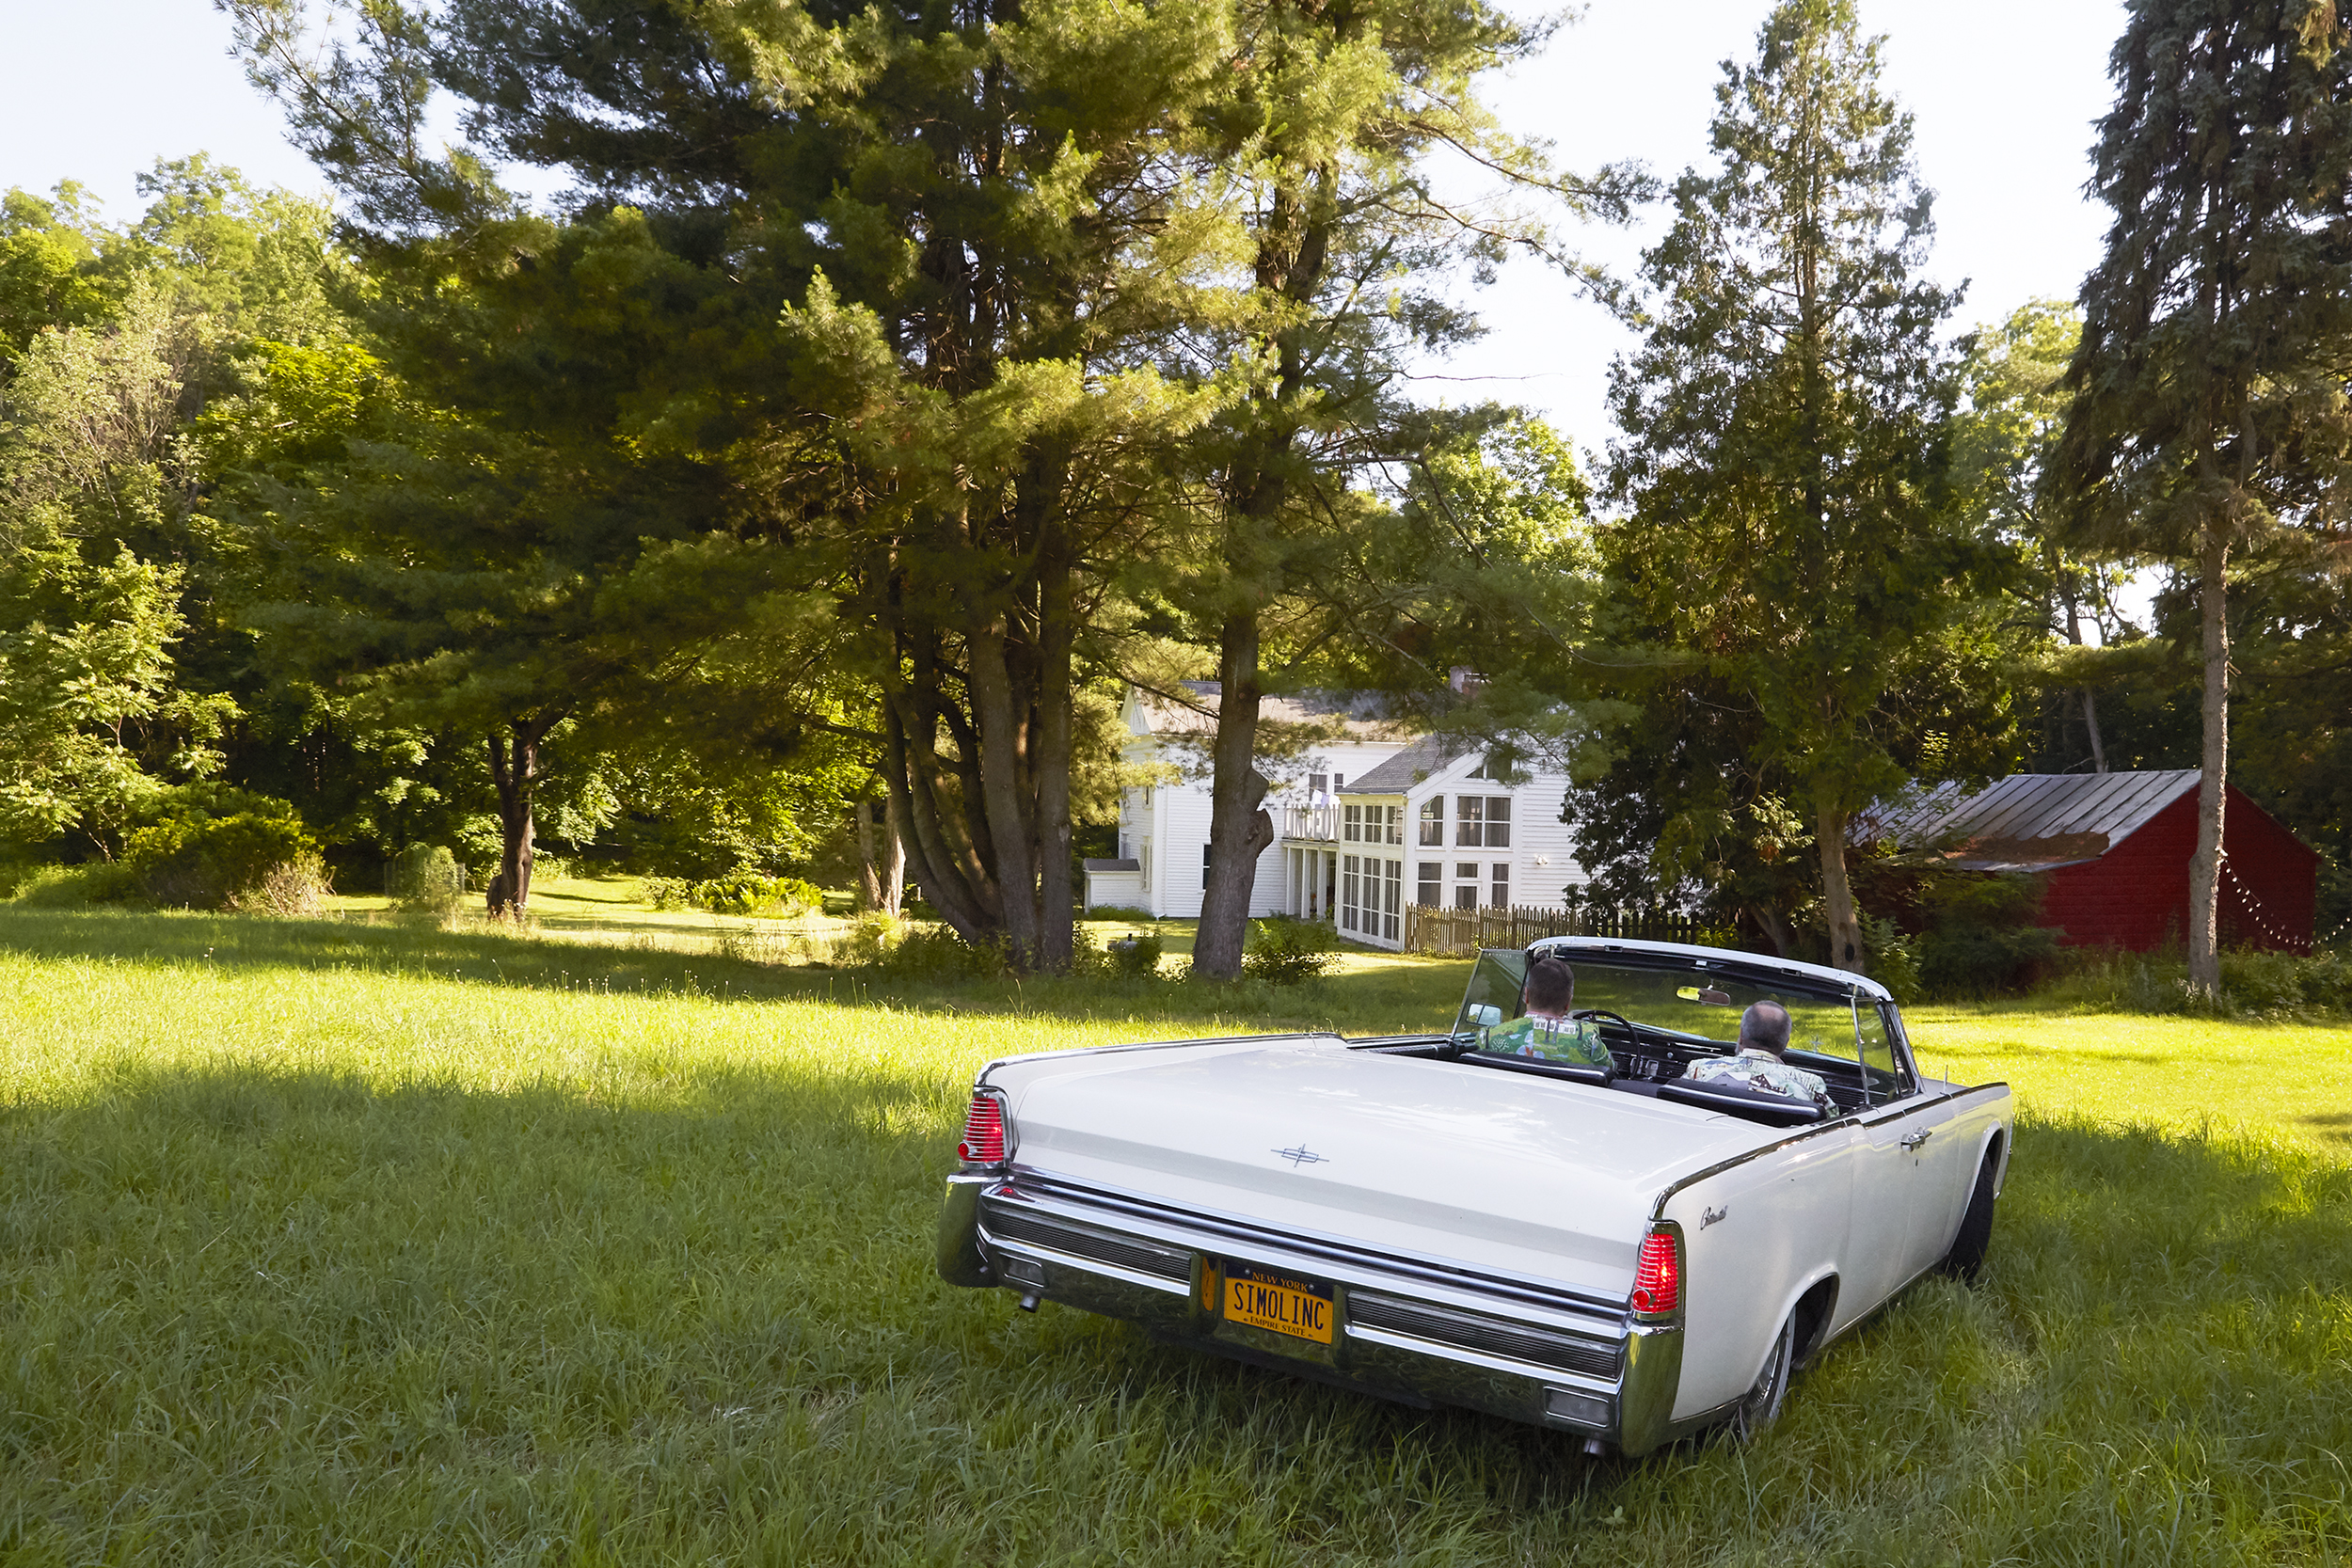 Let's go for a spin! 1965 Lincoln Continental convertible.